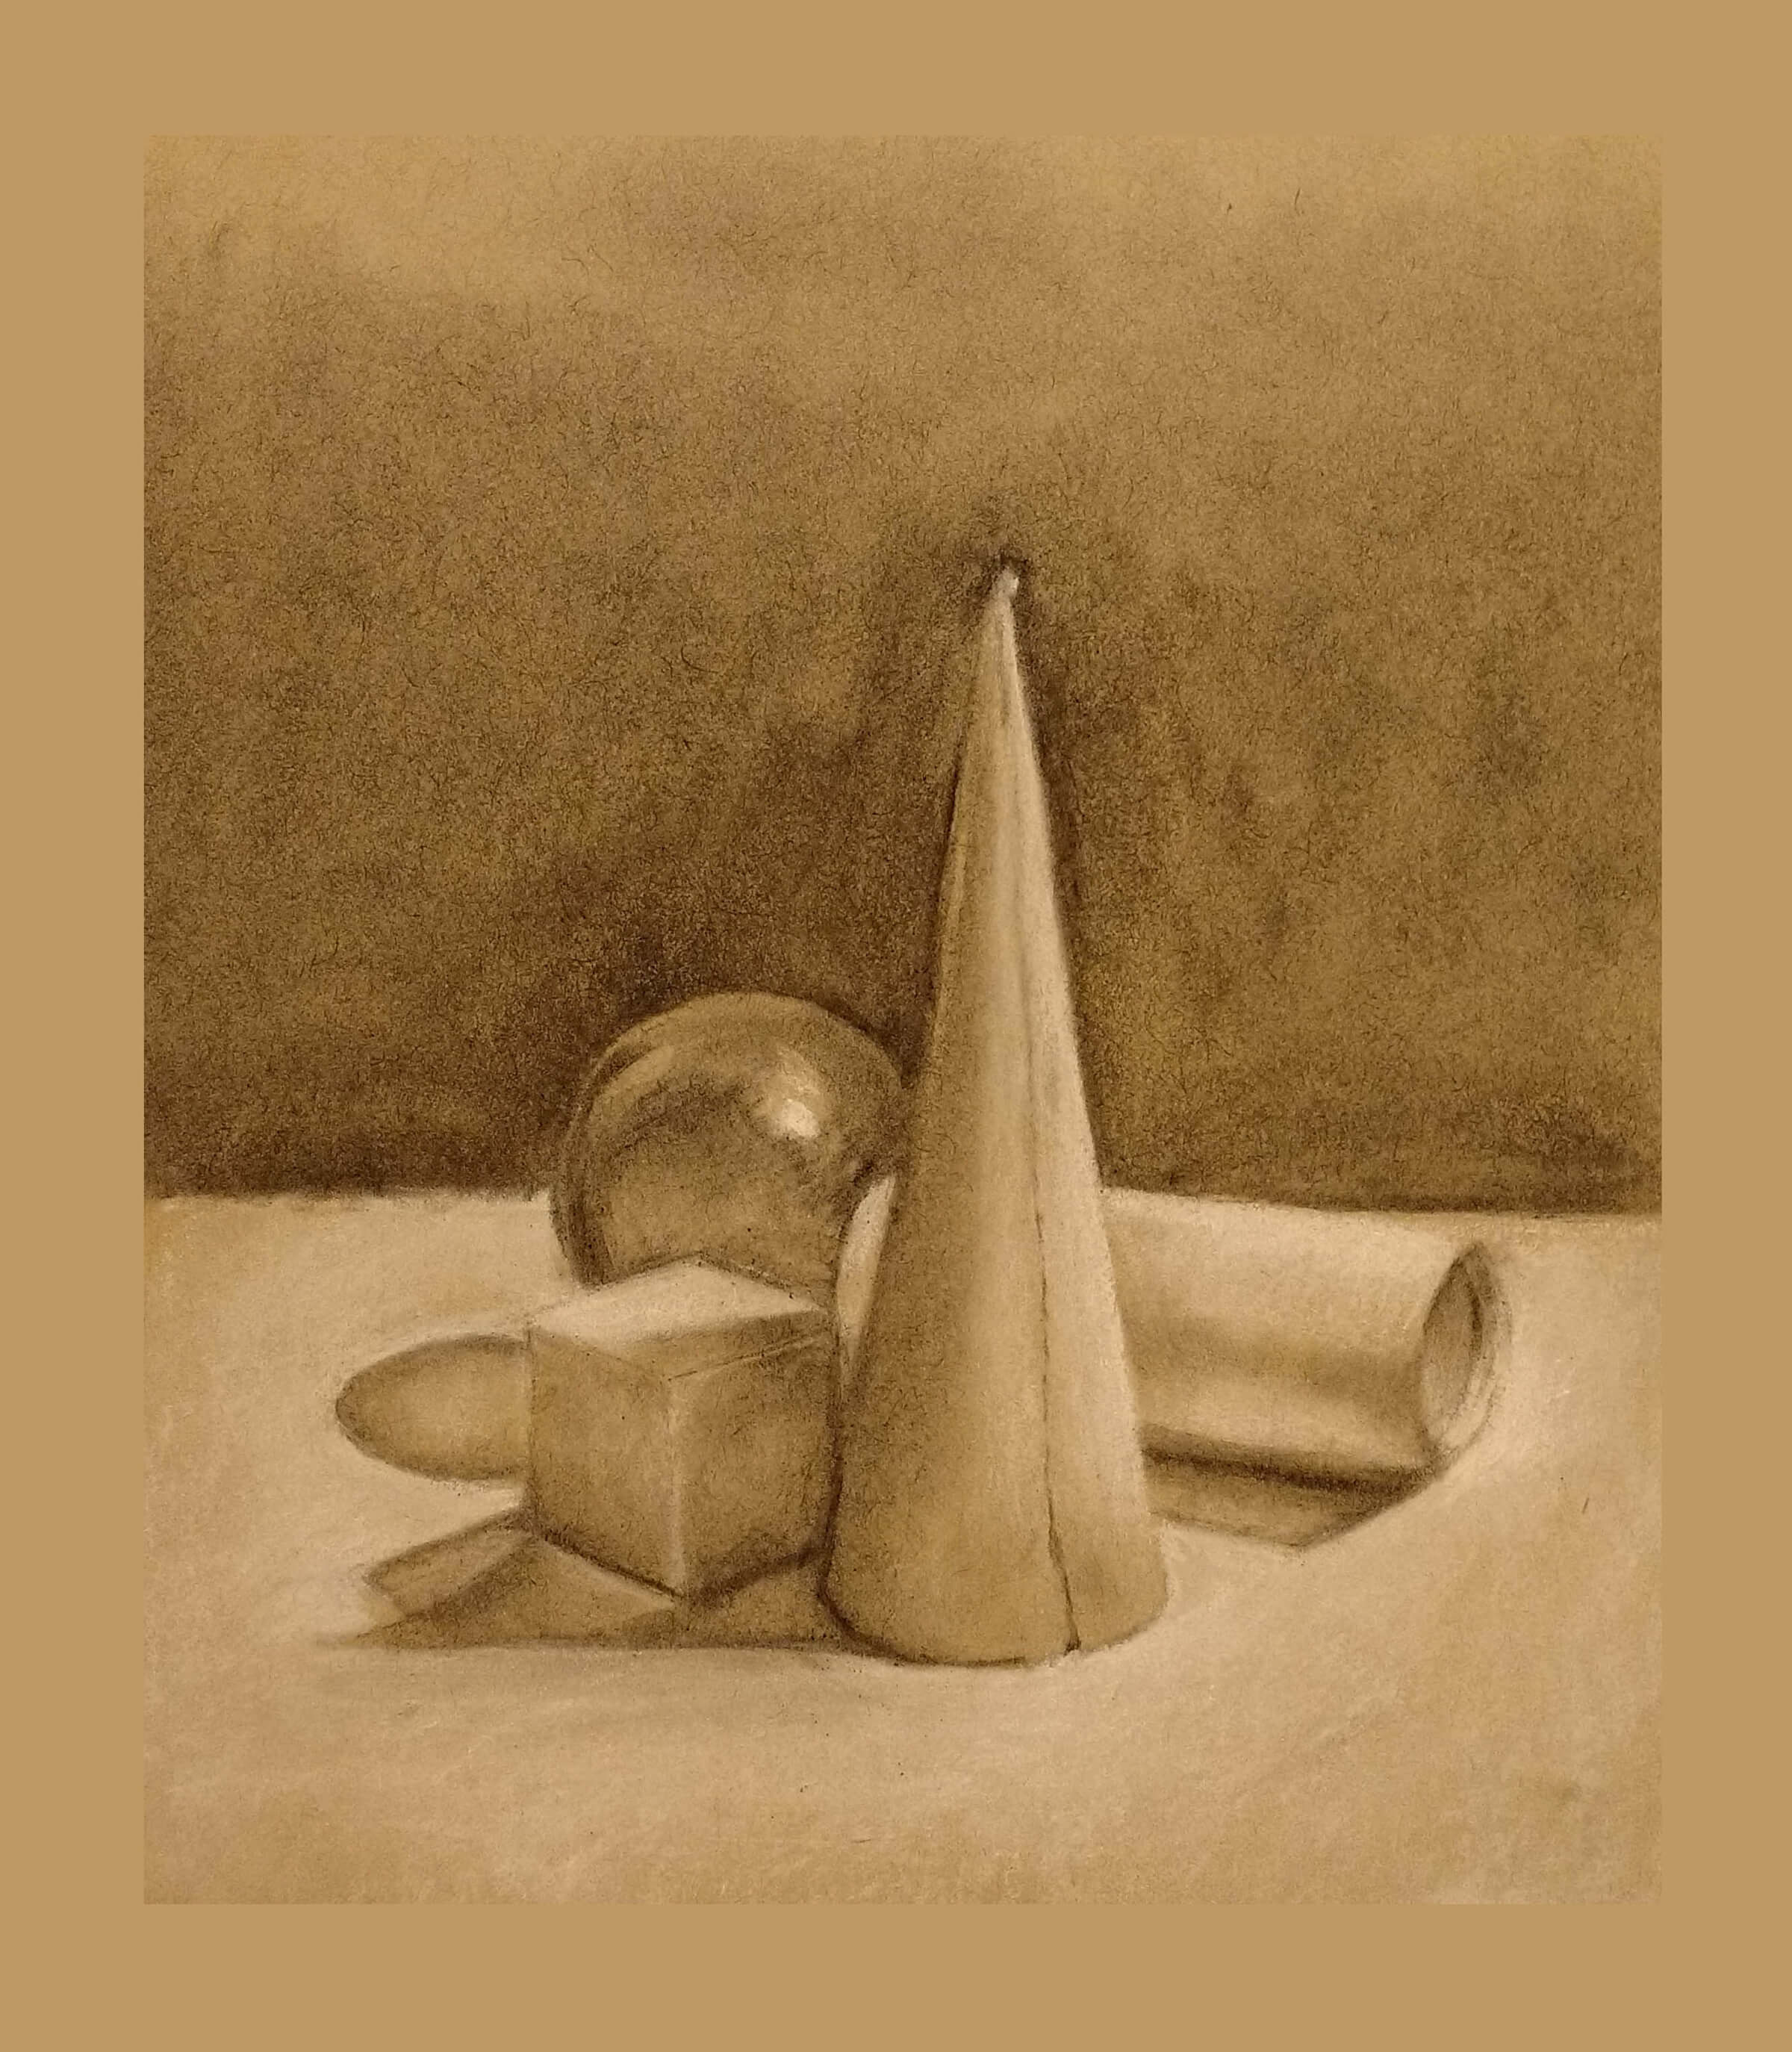 still-life, monochromatic drawing of a shiny ball and blocks in various geometric shapes